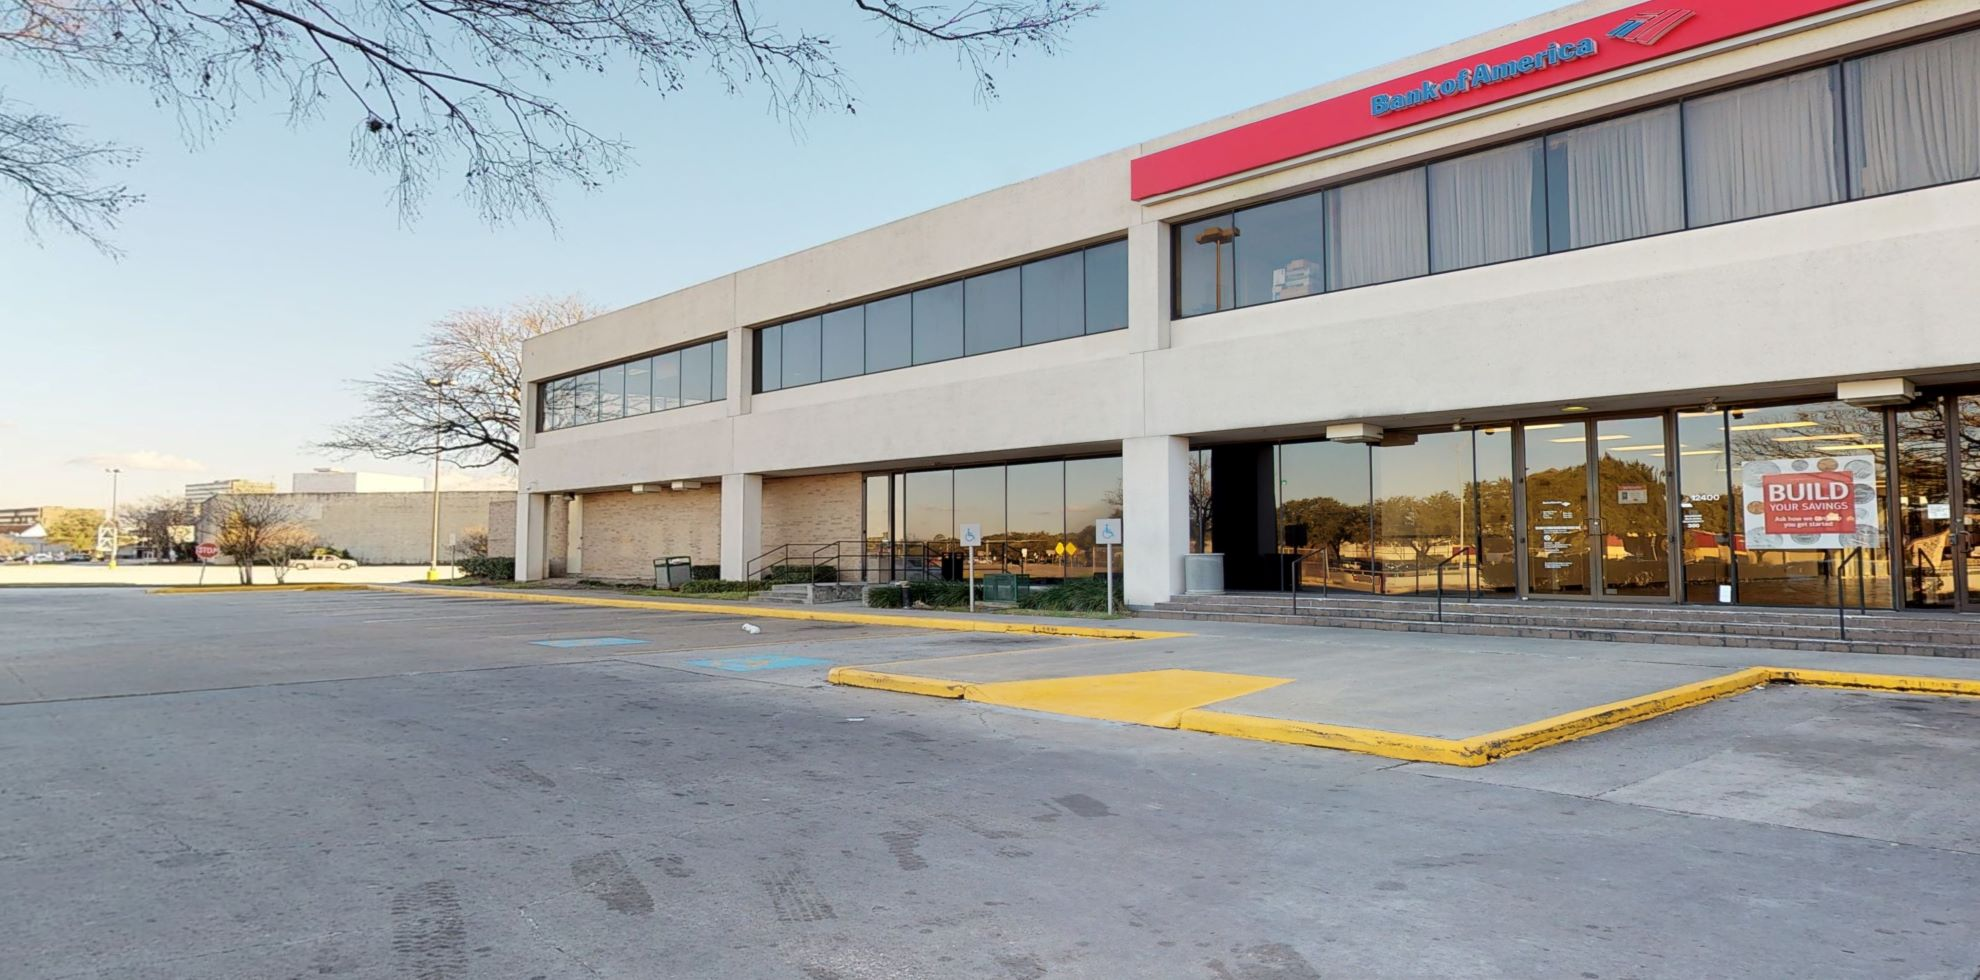 Bank of America financial center with walk-up ATM   12400 North Fwy, Houston, TX 77060